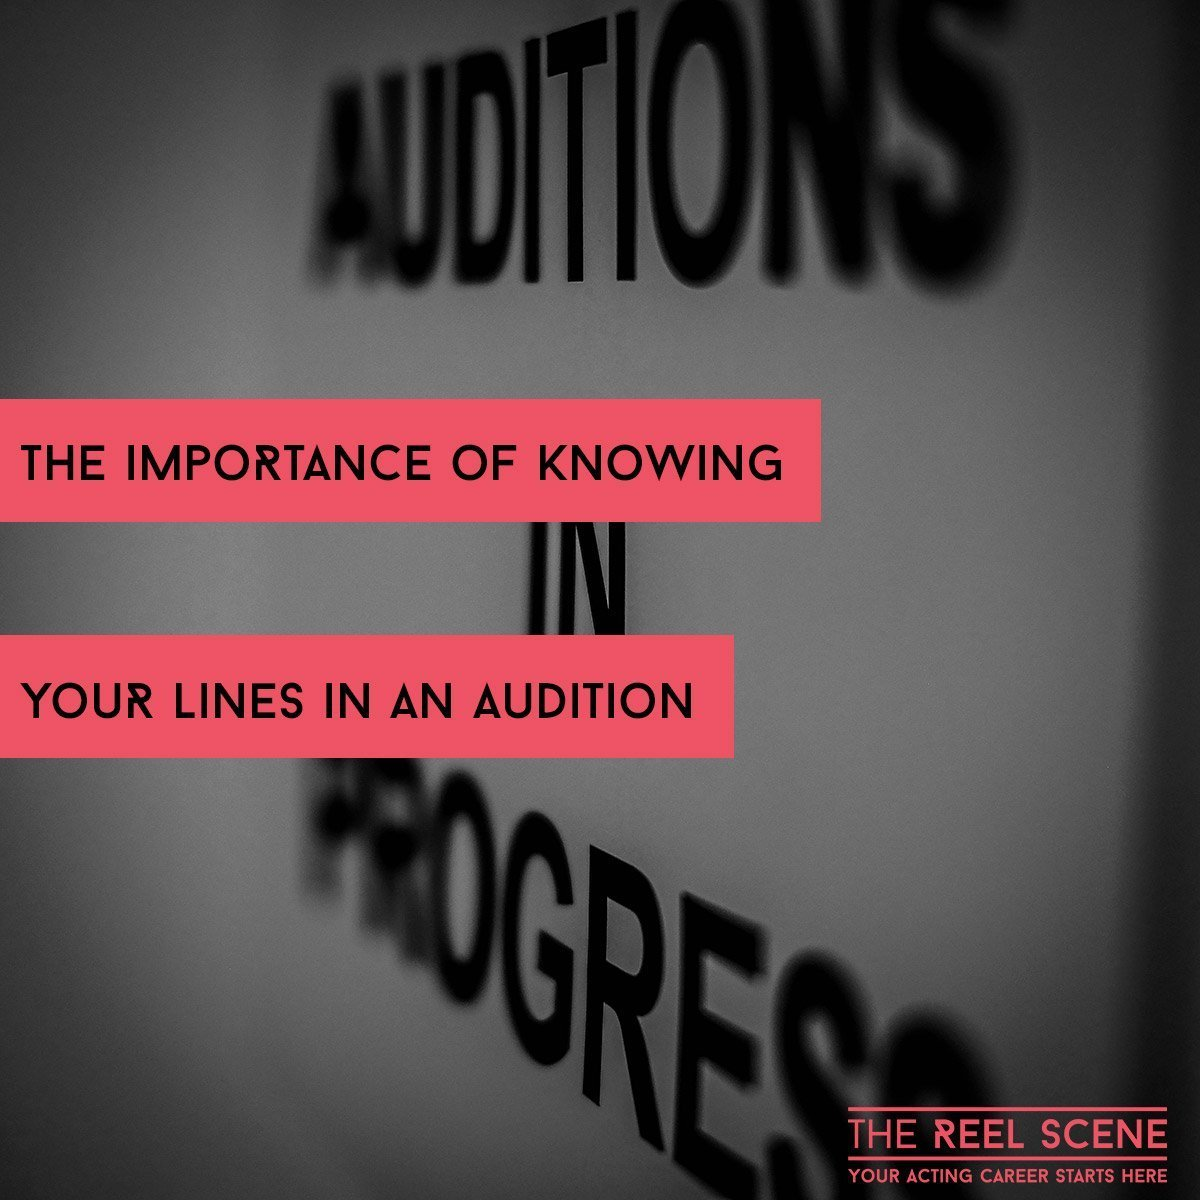 Knowing your lines at an audition is crucial